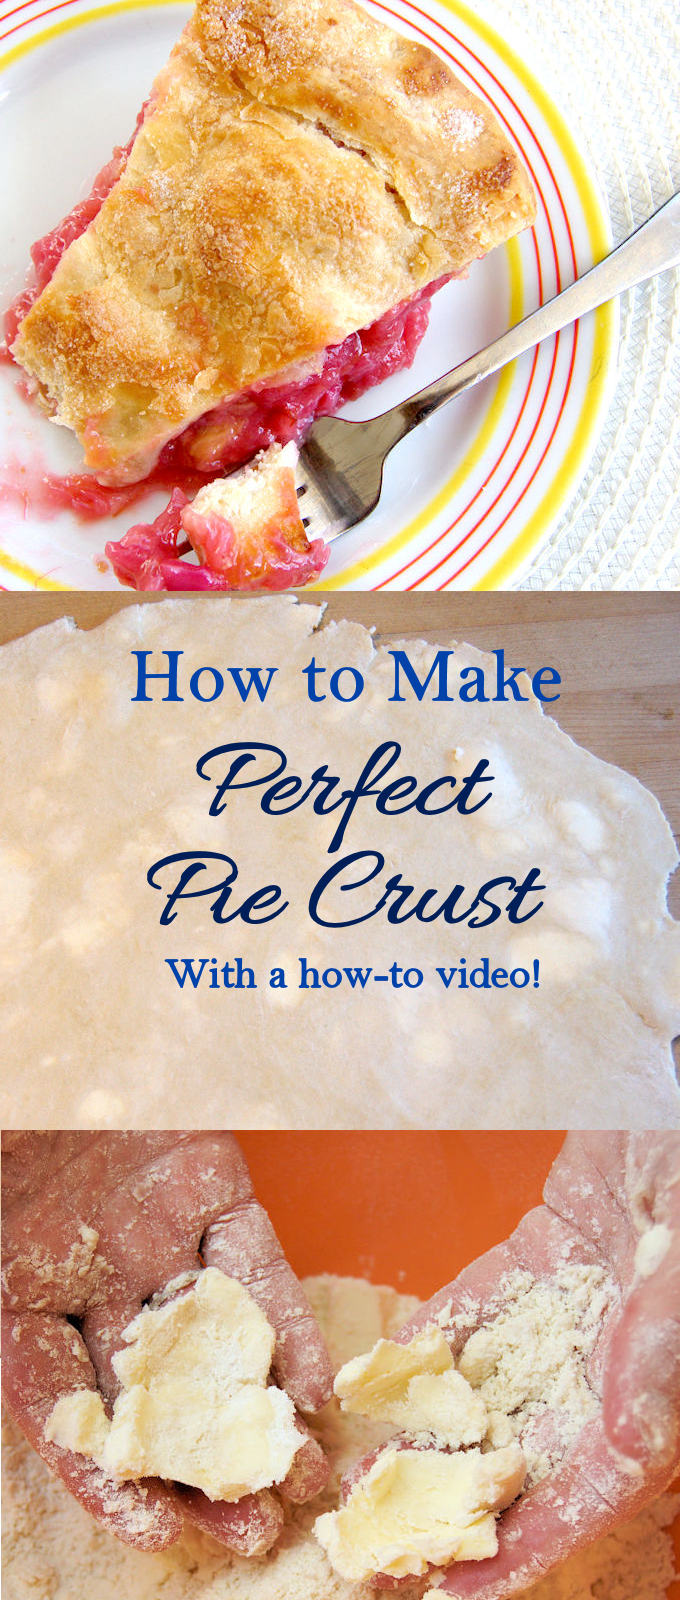 Learn how to make perfect pie crust. Watch a how to video and learn about a special ingredient that makes the crust so flaky.